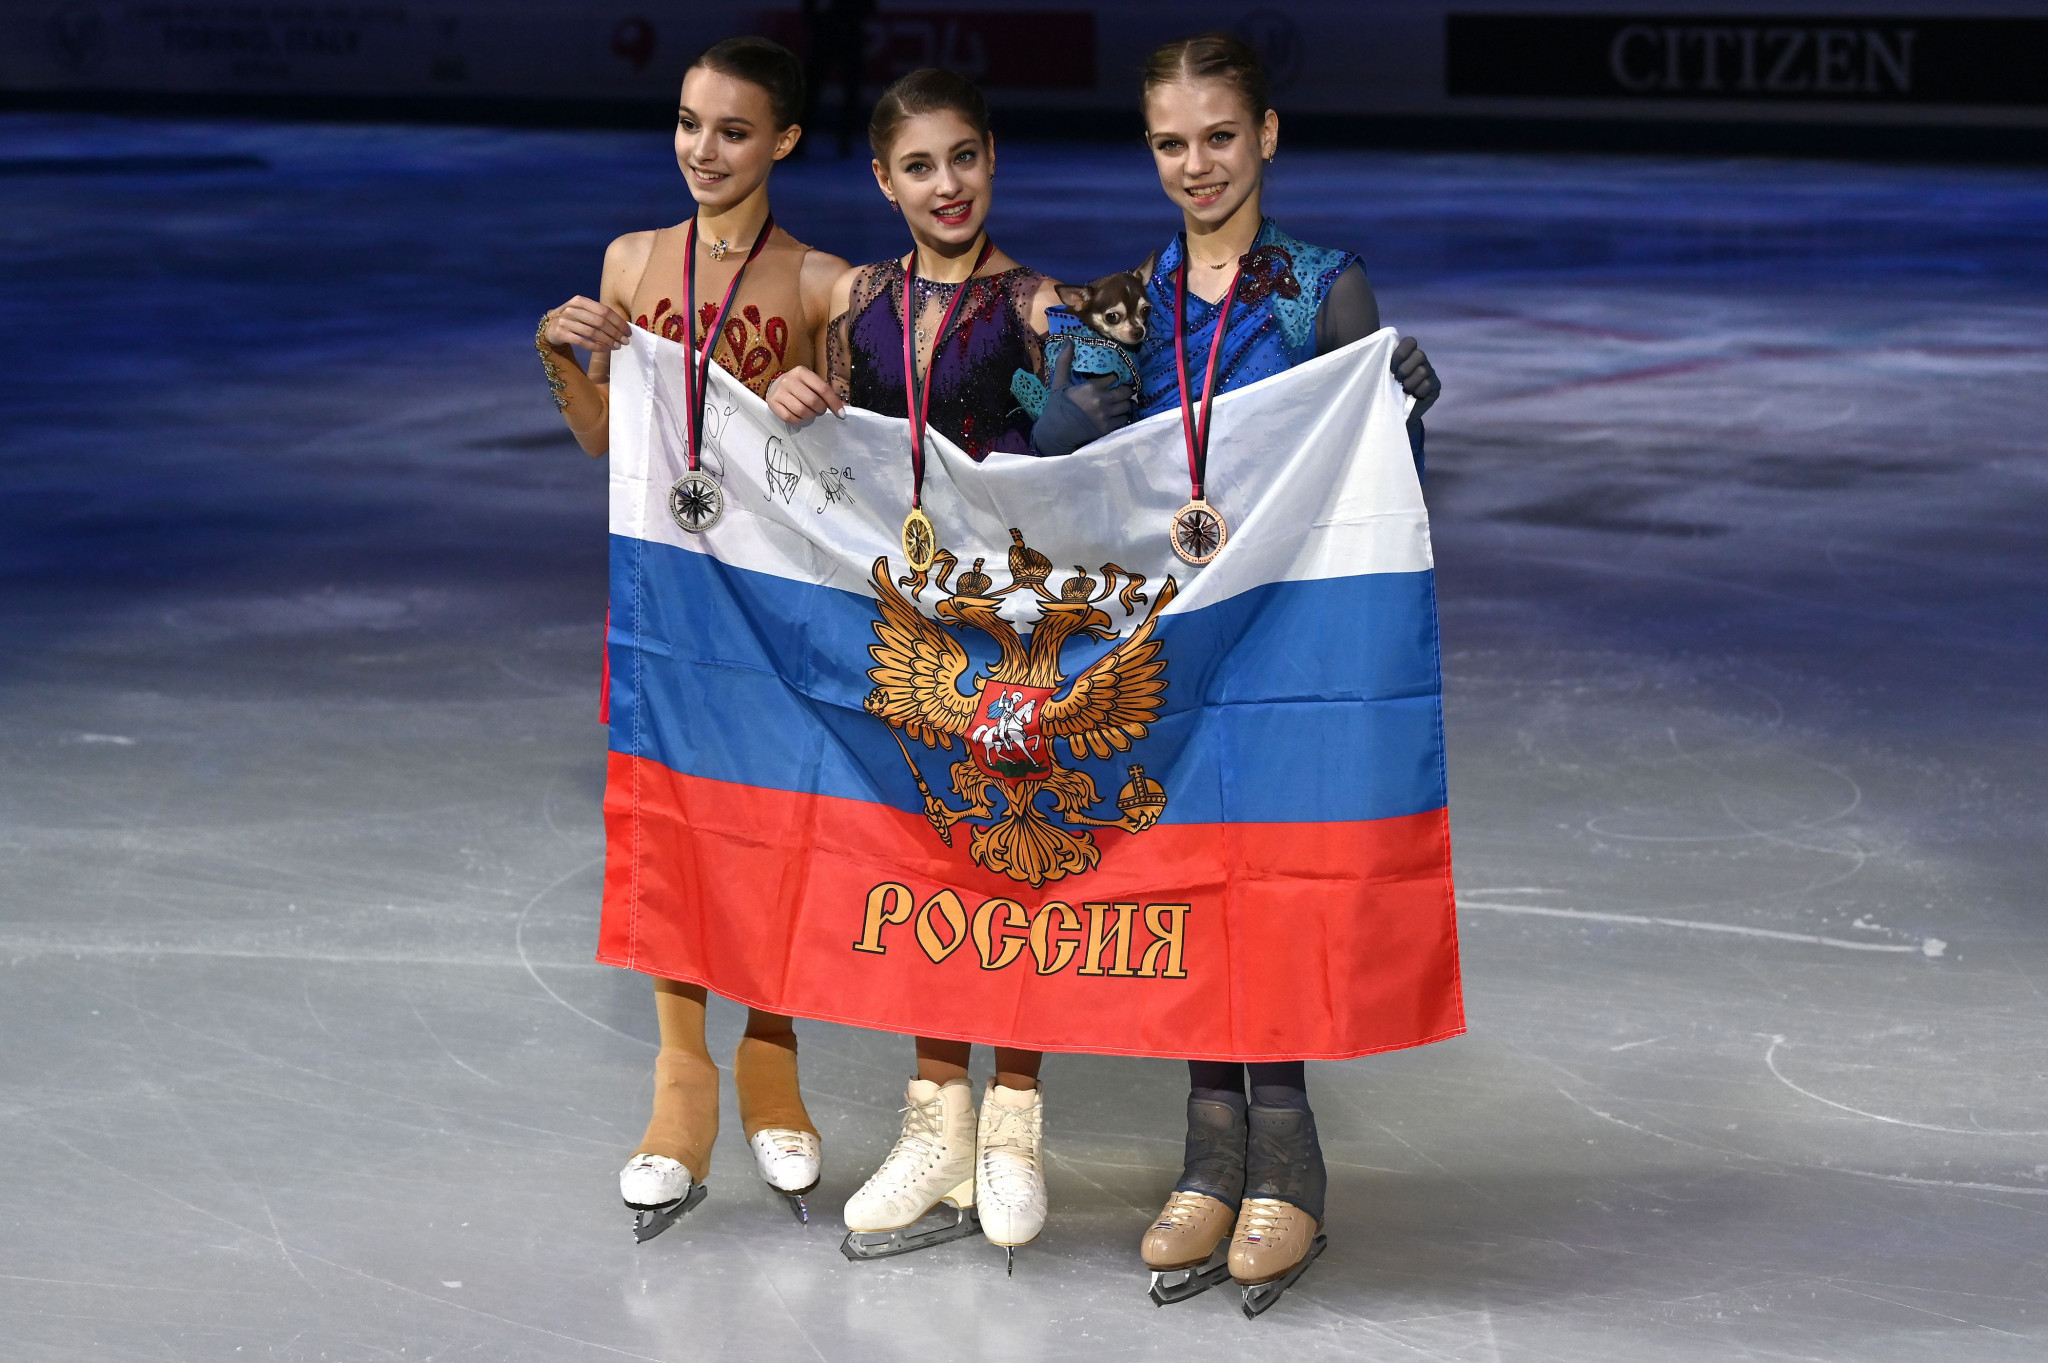 Alena Kostornaia, centre, Anna Shcherbakova, left, and Alexandra Trusova, right, completed a Russian clean sweep of the medals at the ISU Grand Prix Final and will be hoping for the same at the European Championships ©Getty Images